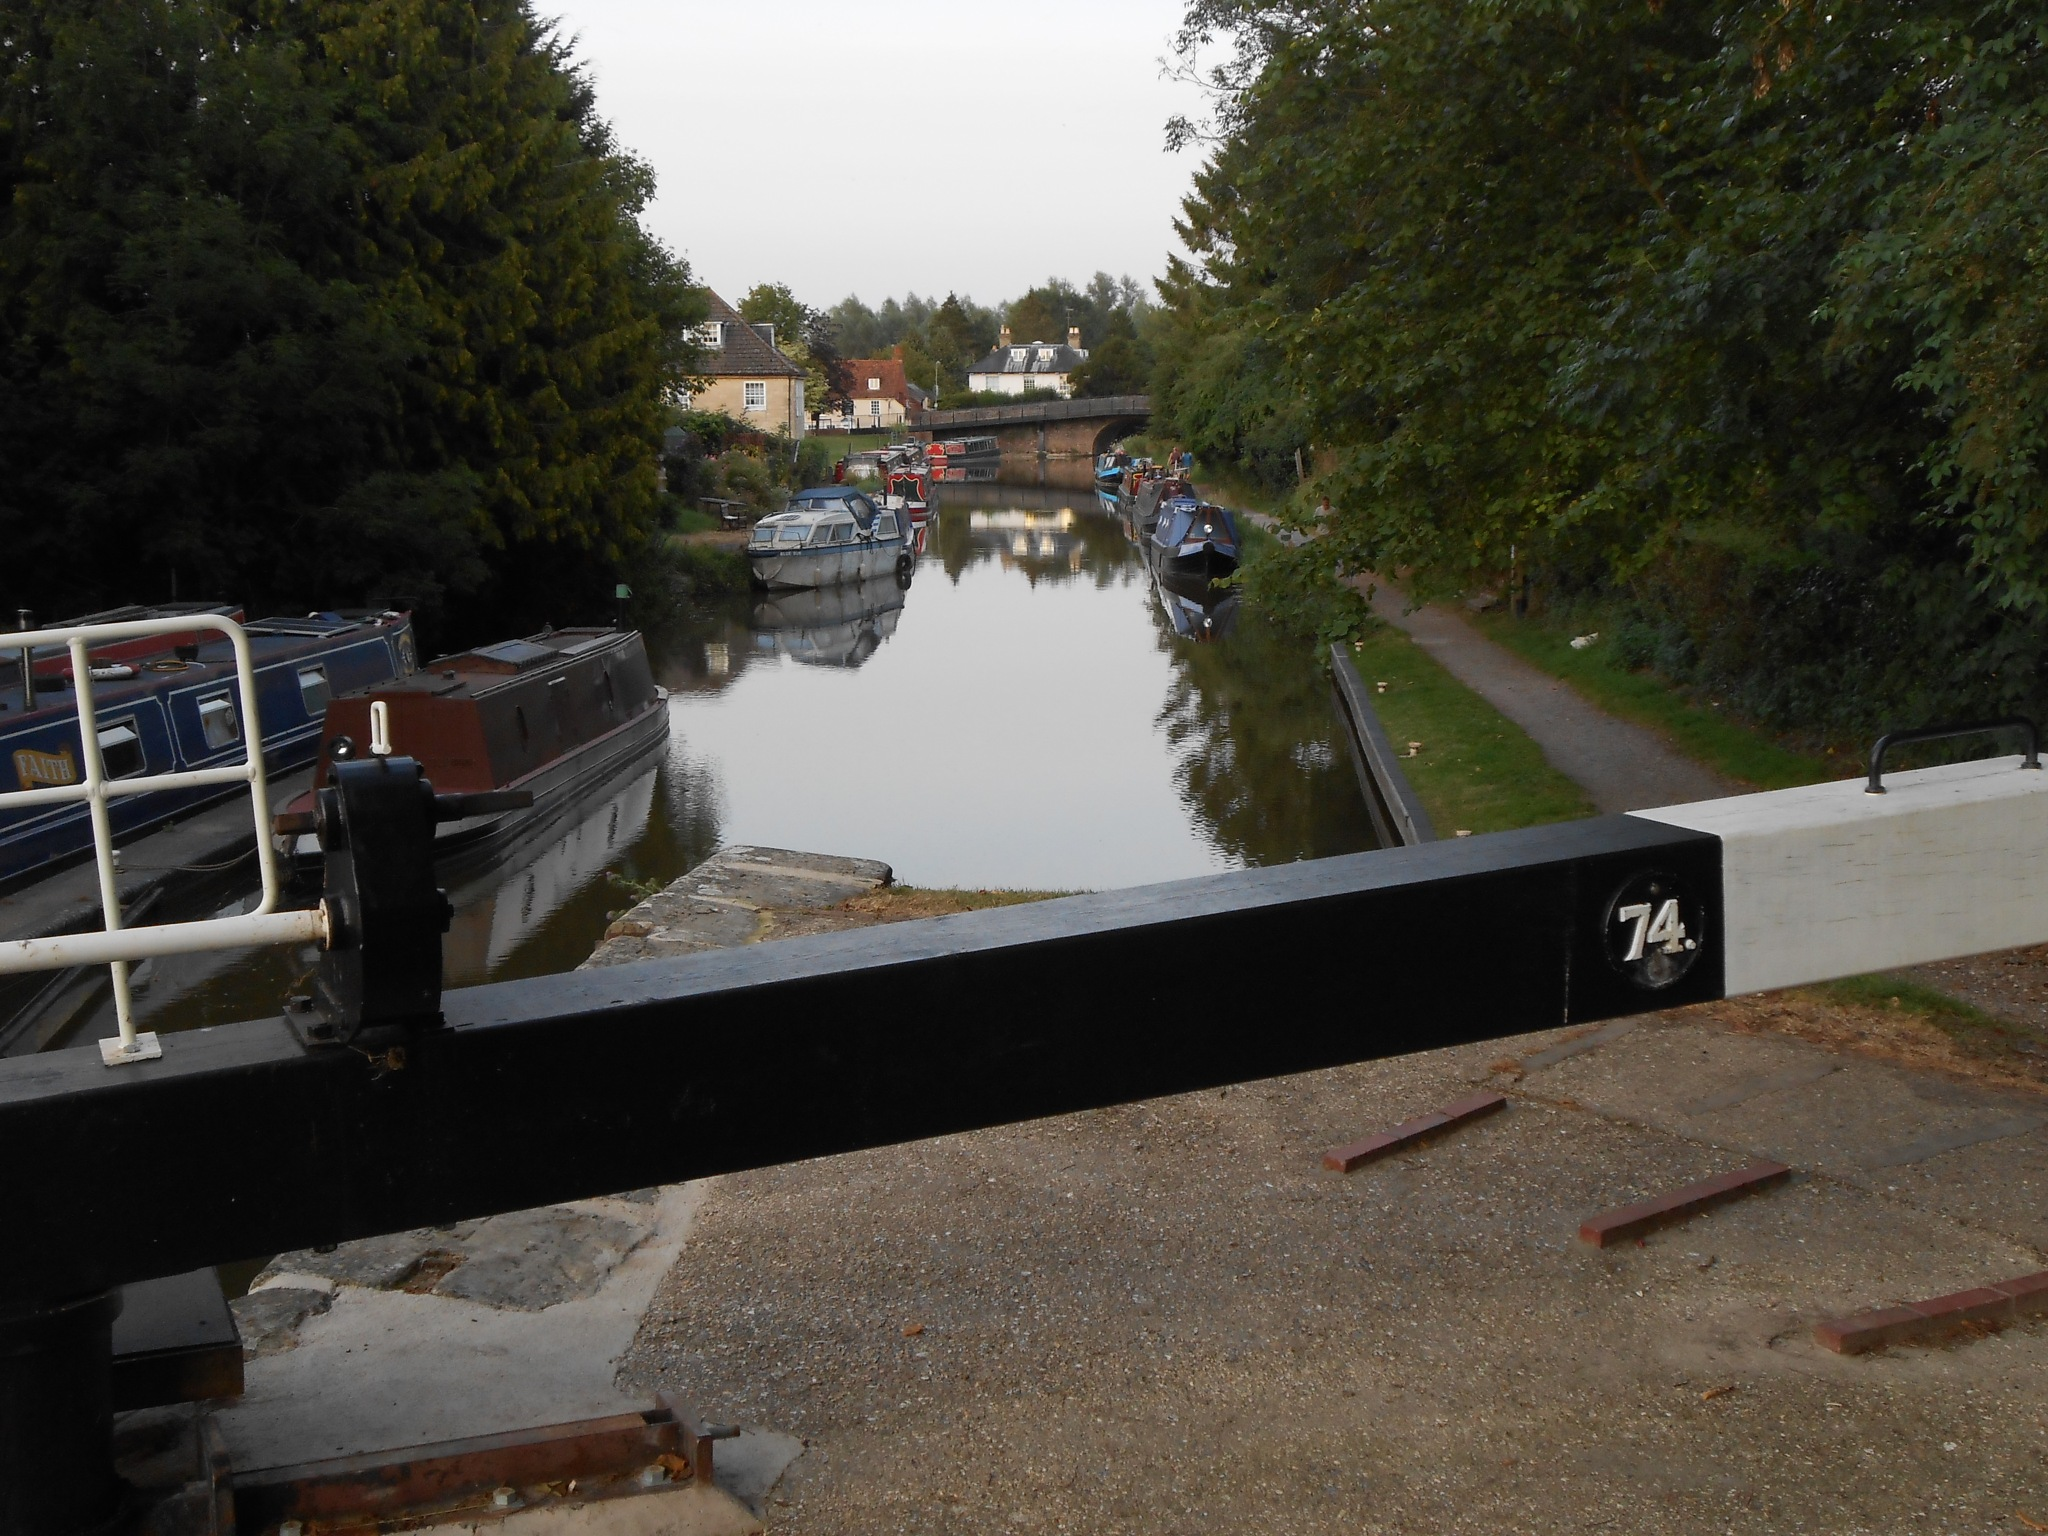 Kennet and Avon Canal, Hungerford by Kevhyde